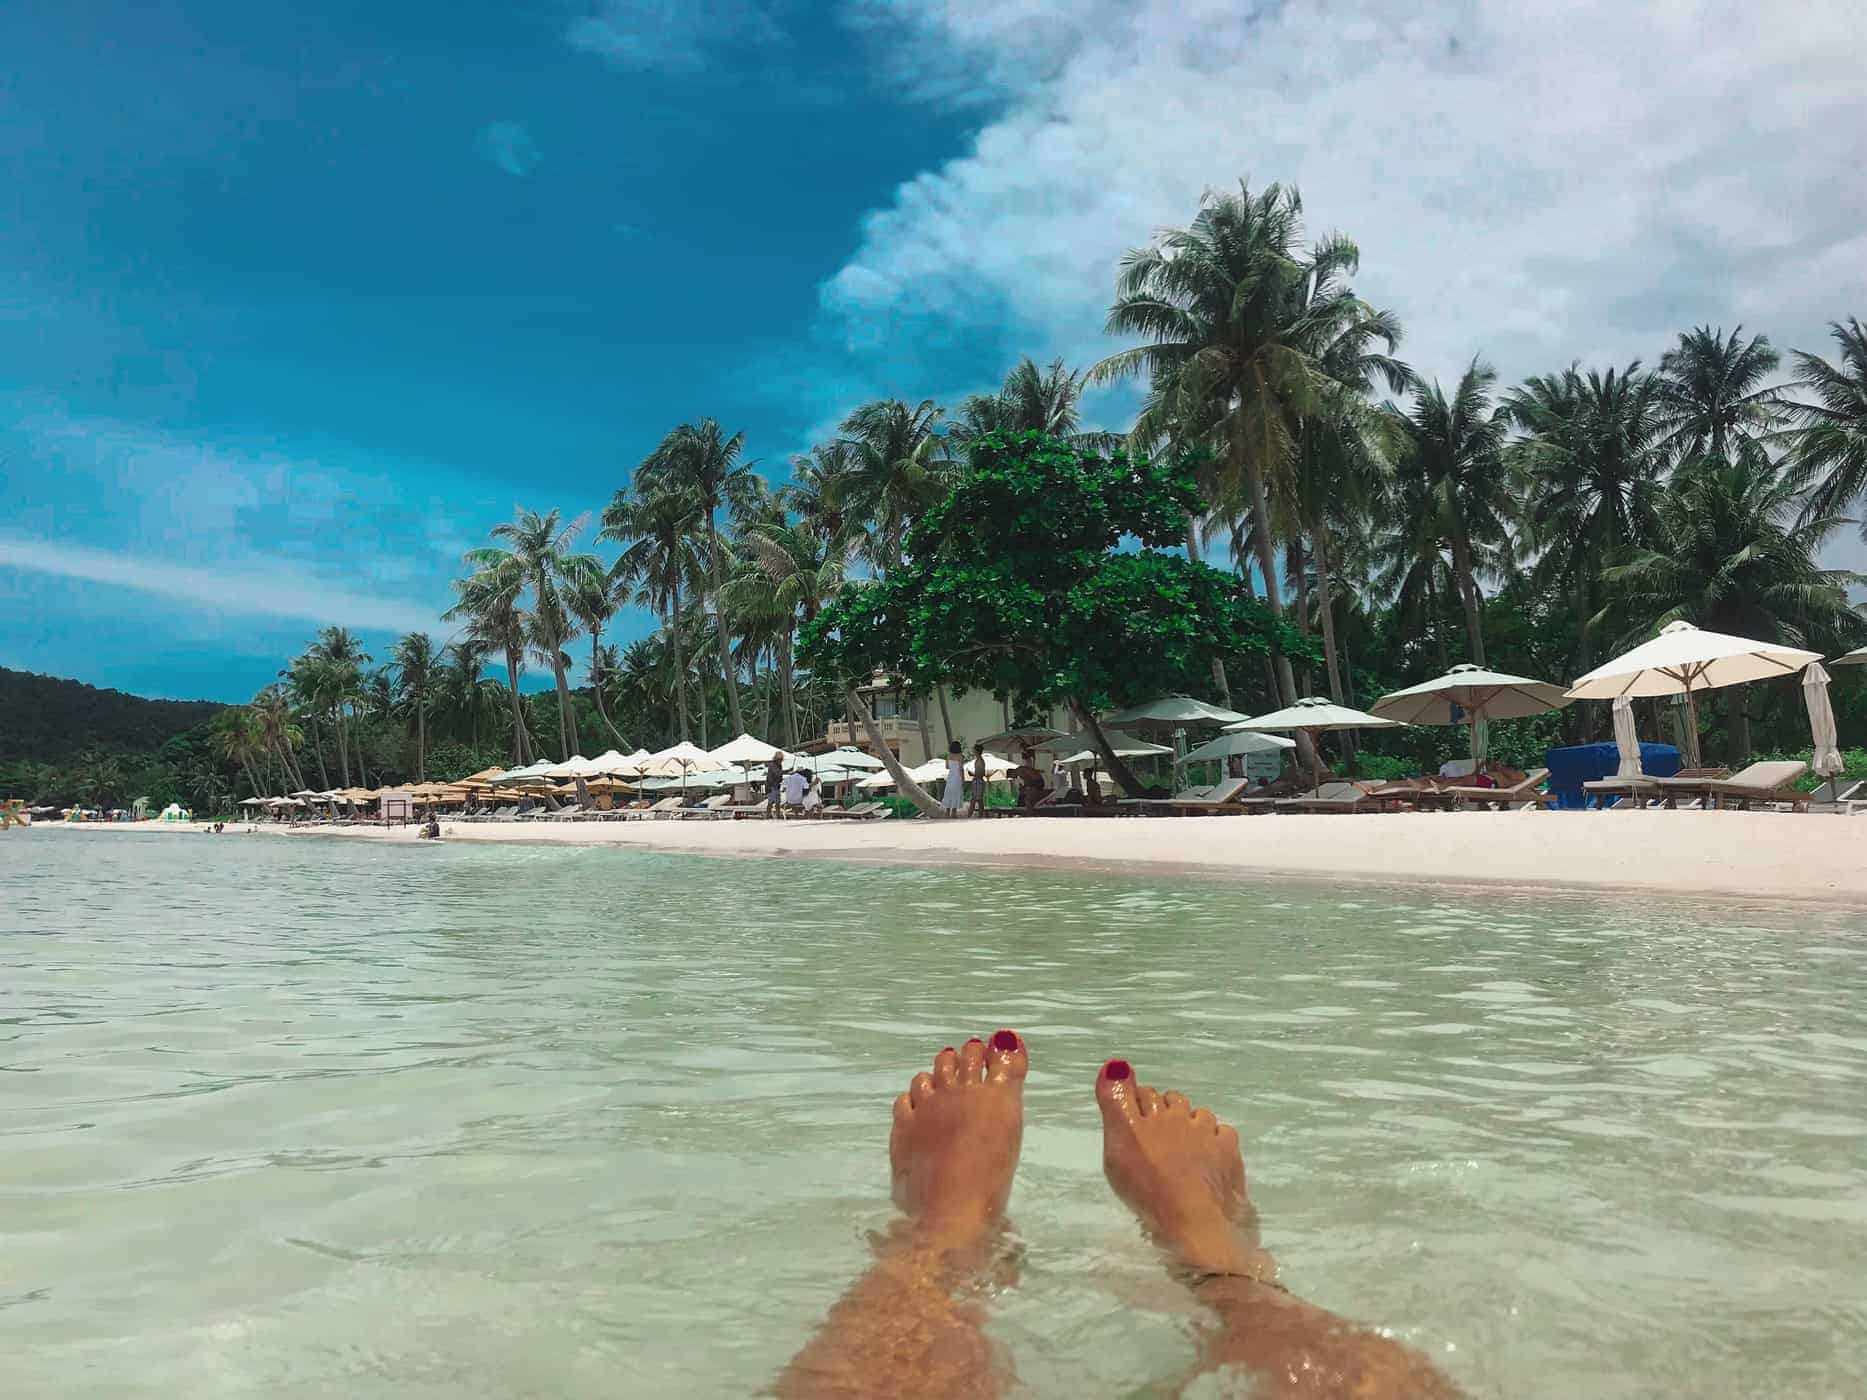 The beautiful clear waters and sands of Phu Quoc Island Vietnam